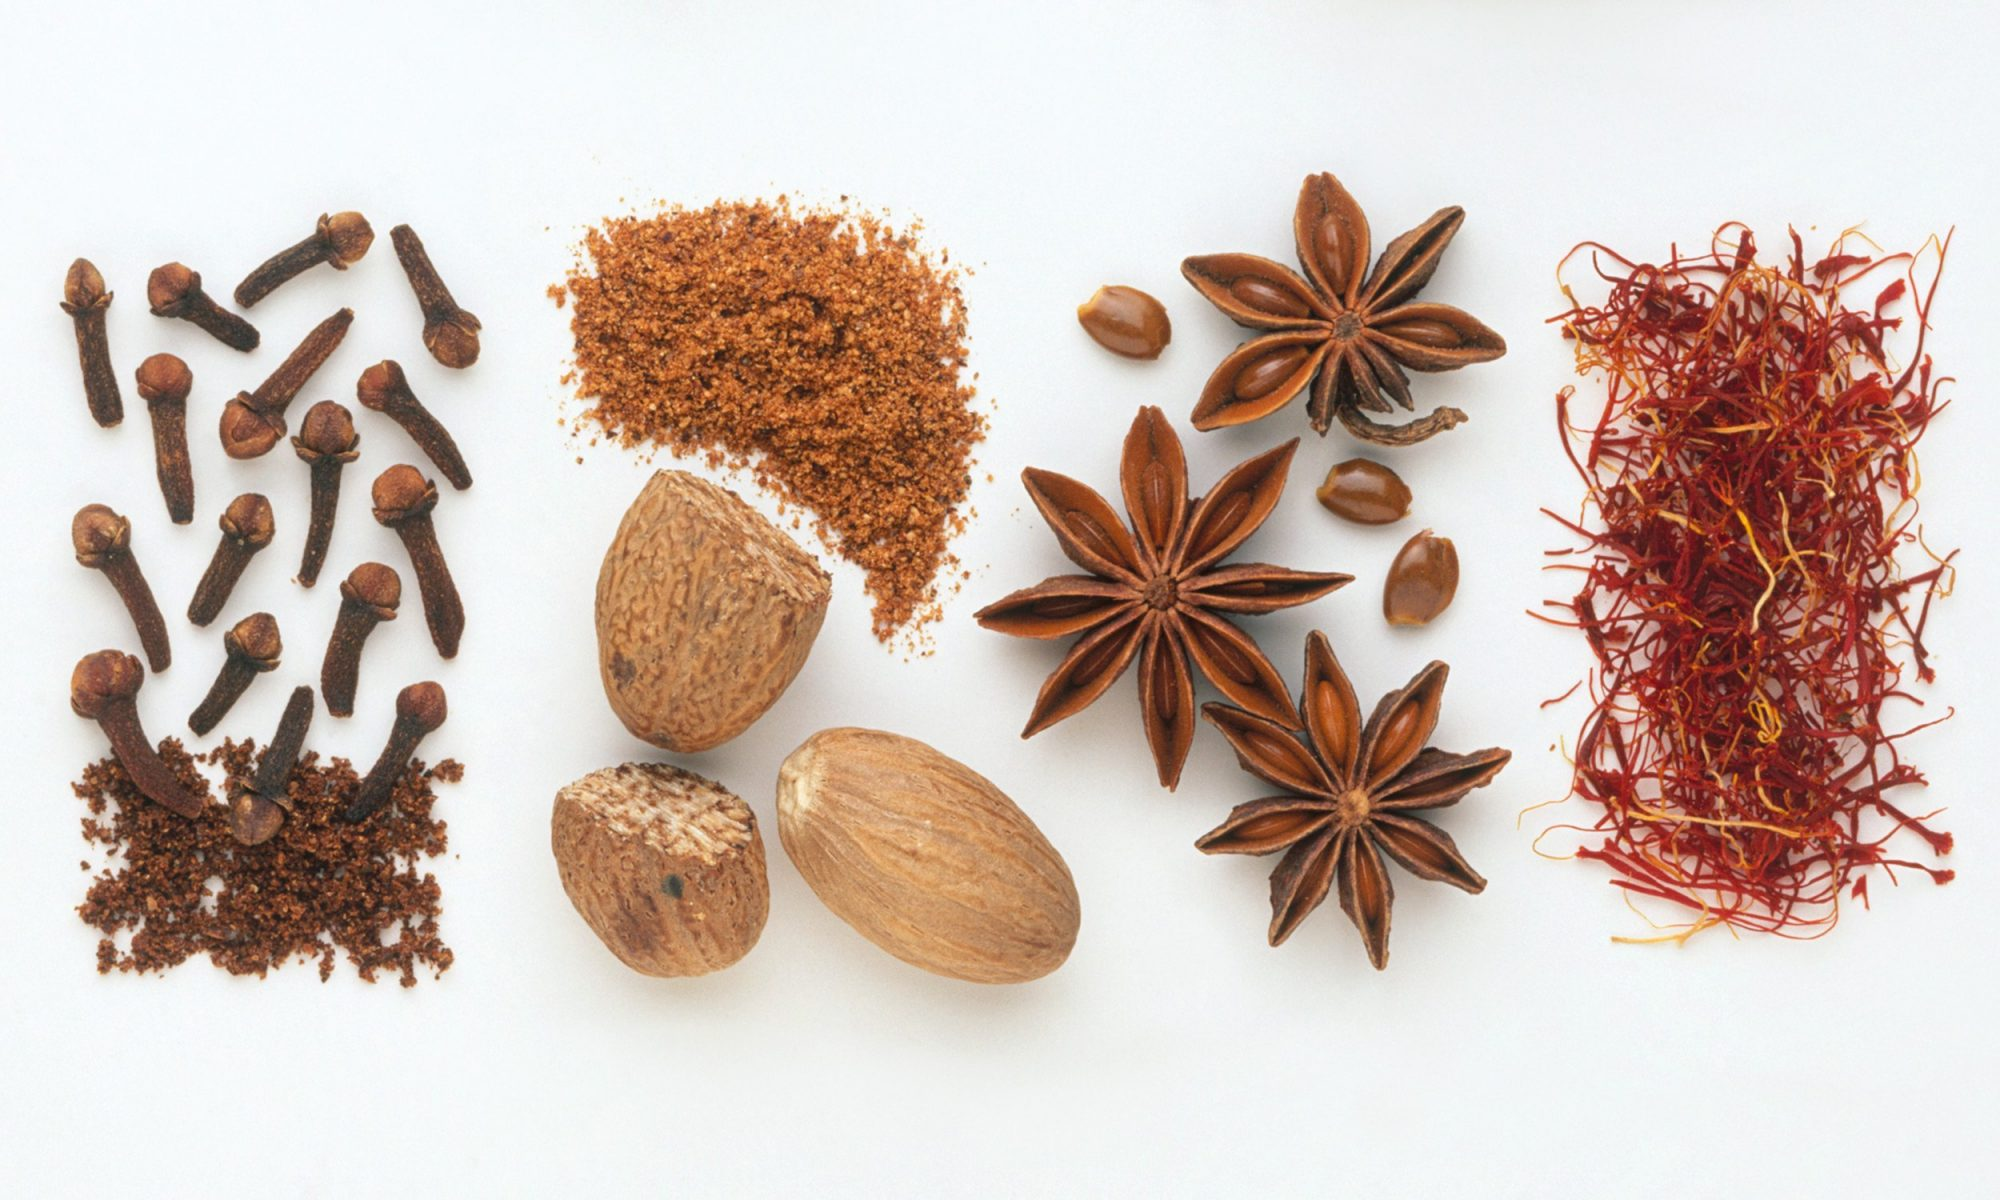 Should You Buy Spices Whole or Ground?